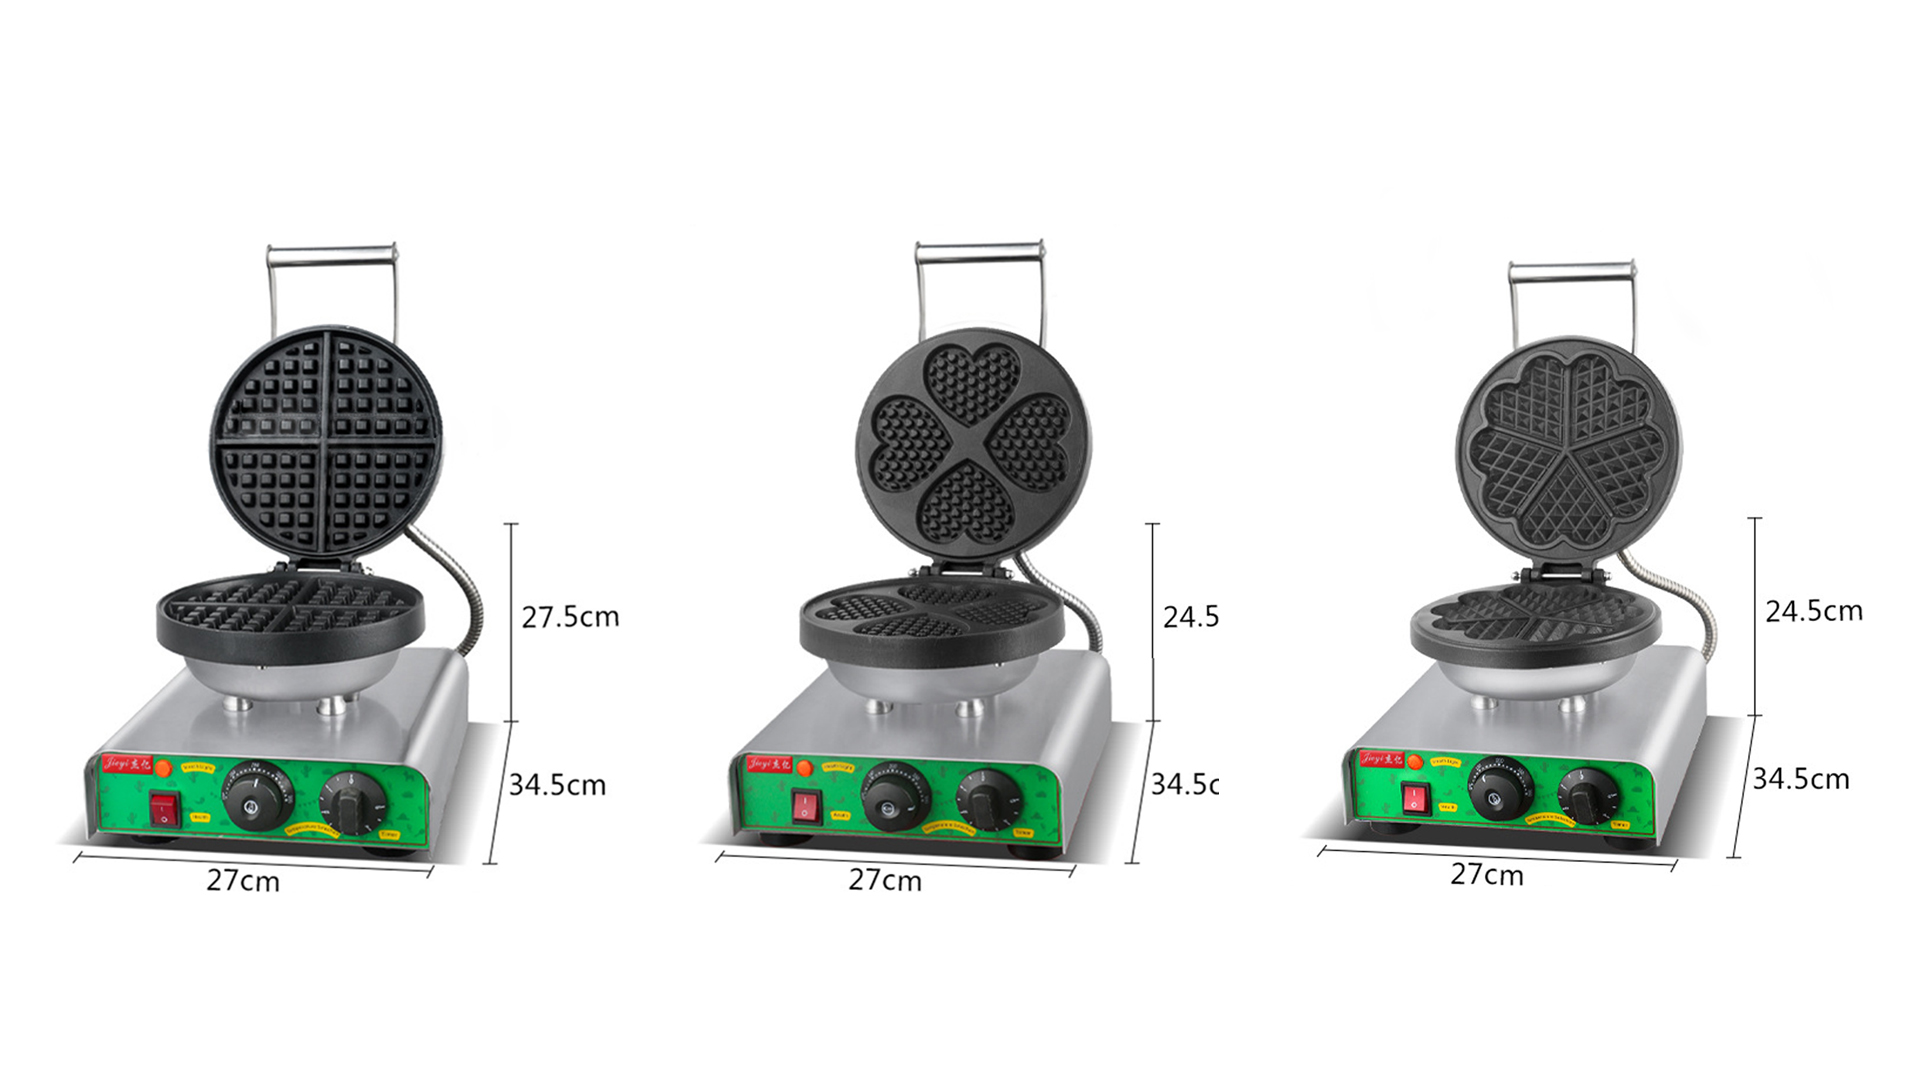 Single-head heart-shaped waffle oven FY-27B commercial electric grid cake scones machine equipment